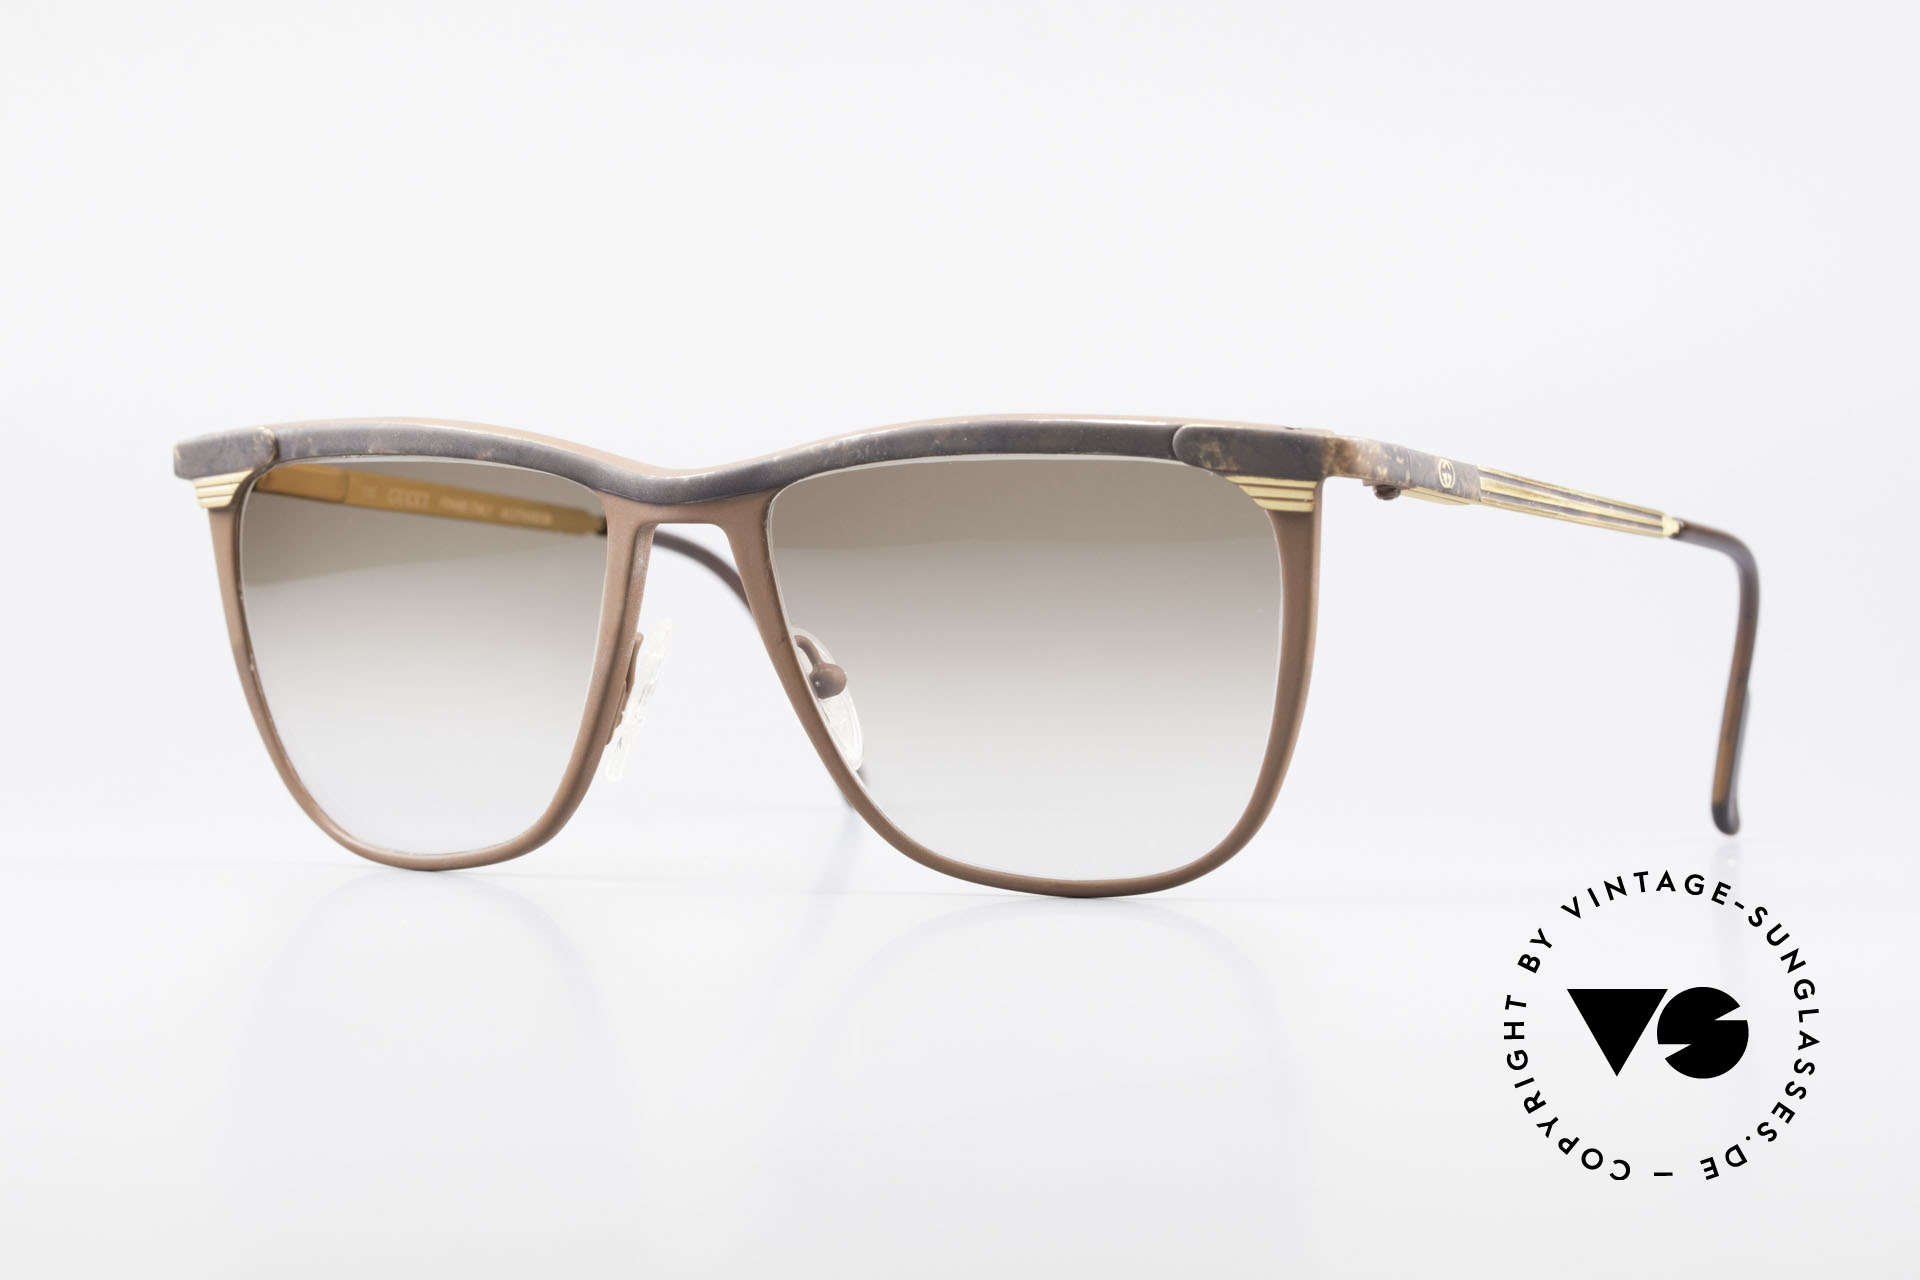 Gucci 2227 Luxury Designer Sunglasses, utterly elegant vintage 1980's sunglasses by Gucci, Made for Men and Women